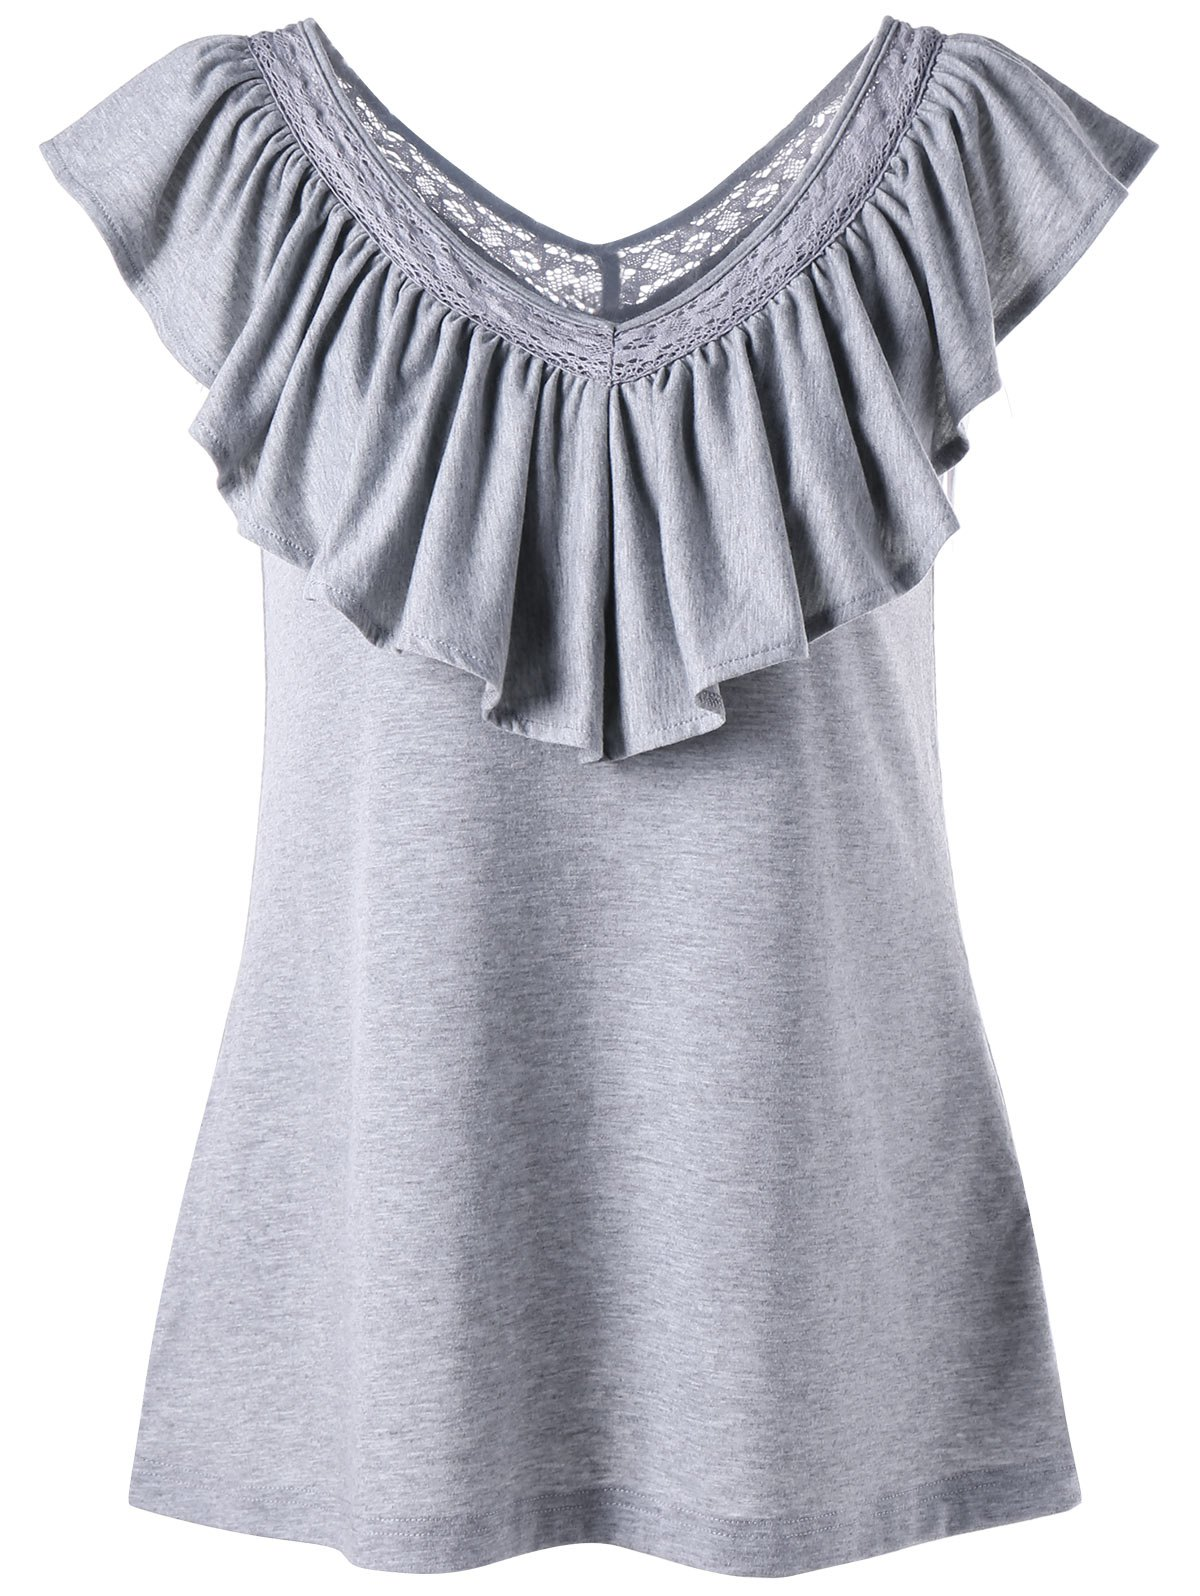 V Neck Tank Top with Ruched Ruffles 217238401